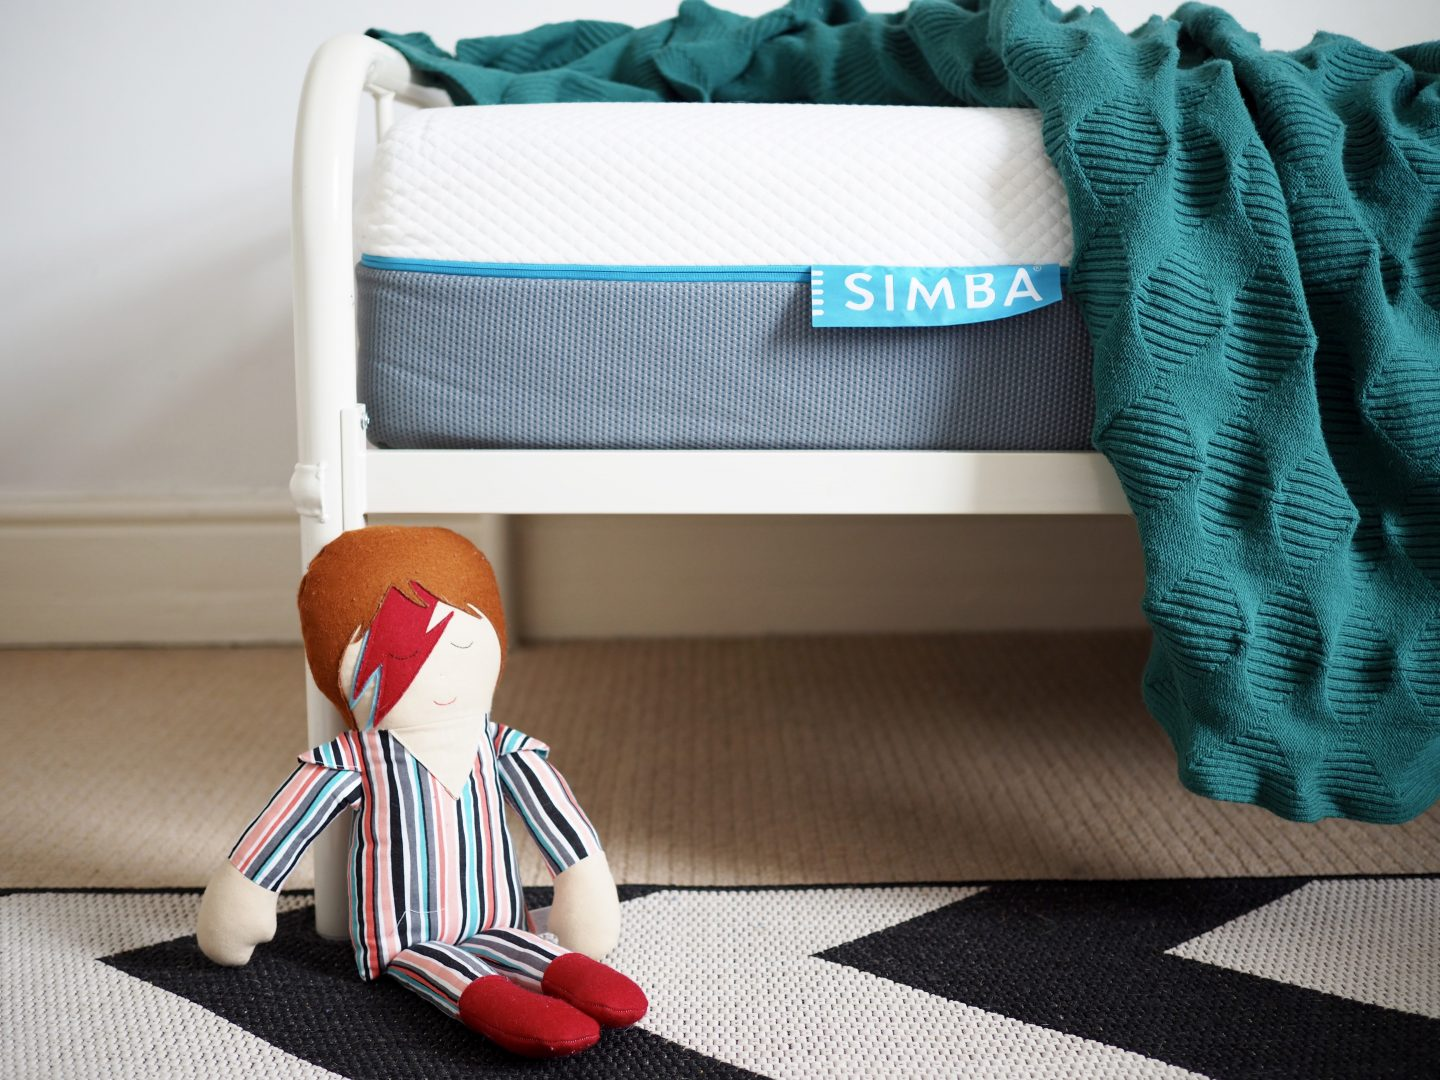 SIMBA HYBRID MATTRESS REVIEW AND DISCOUNT CODE